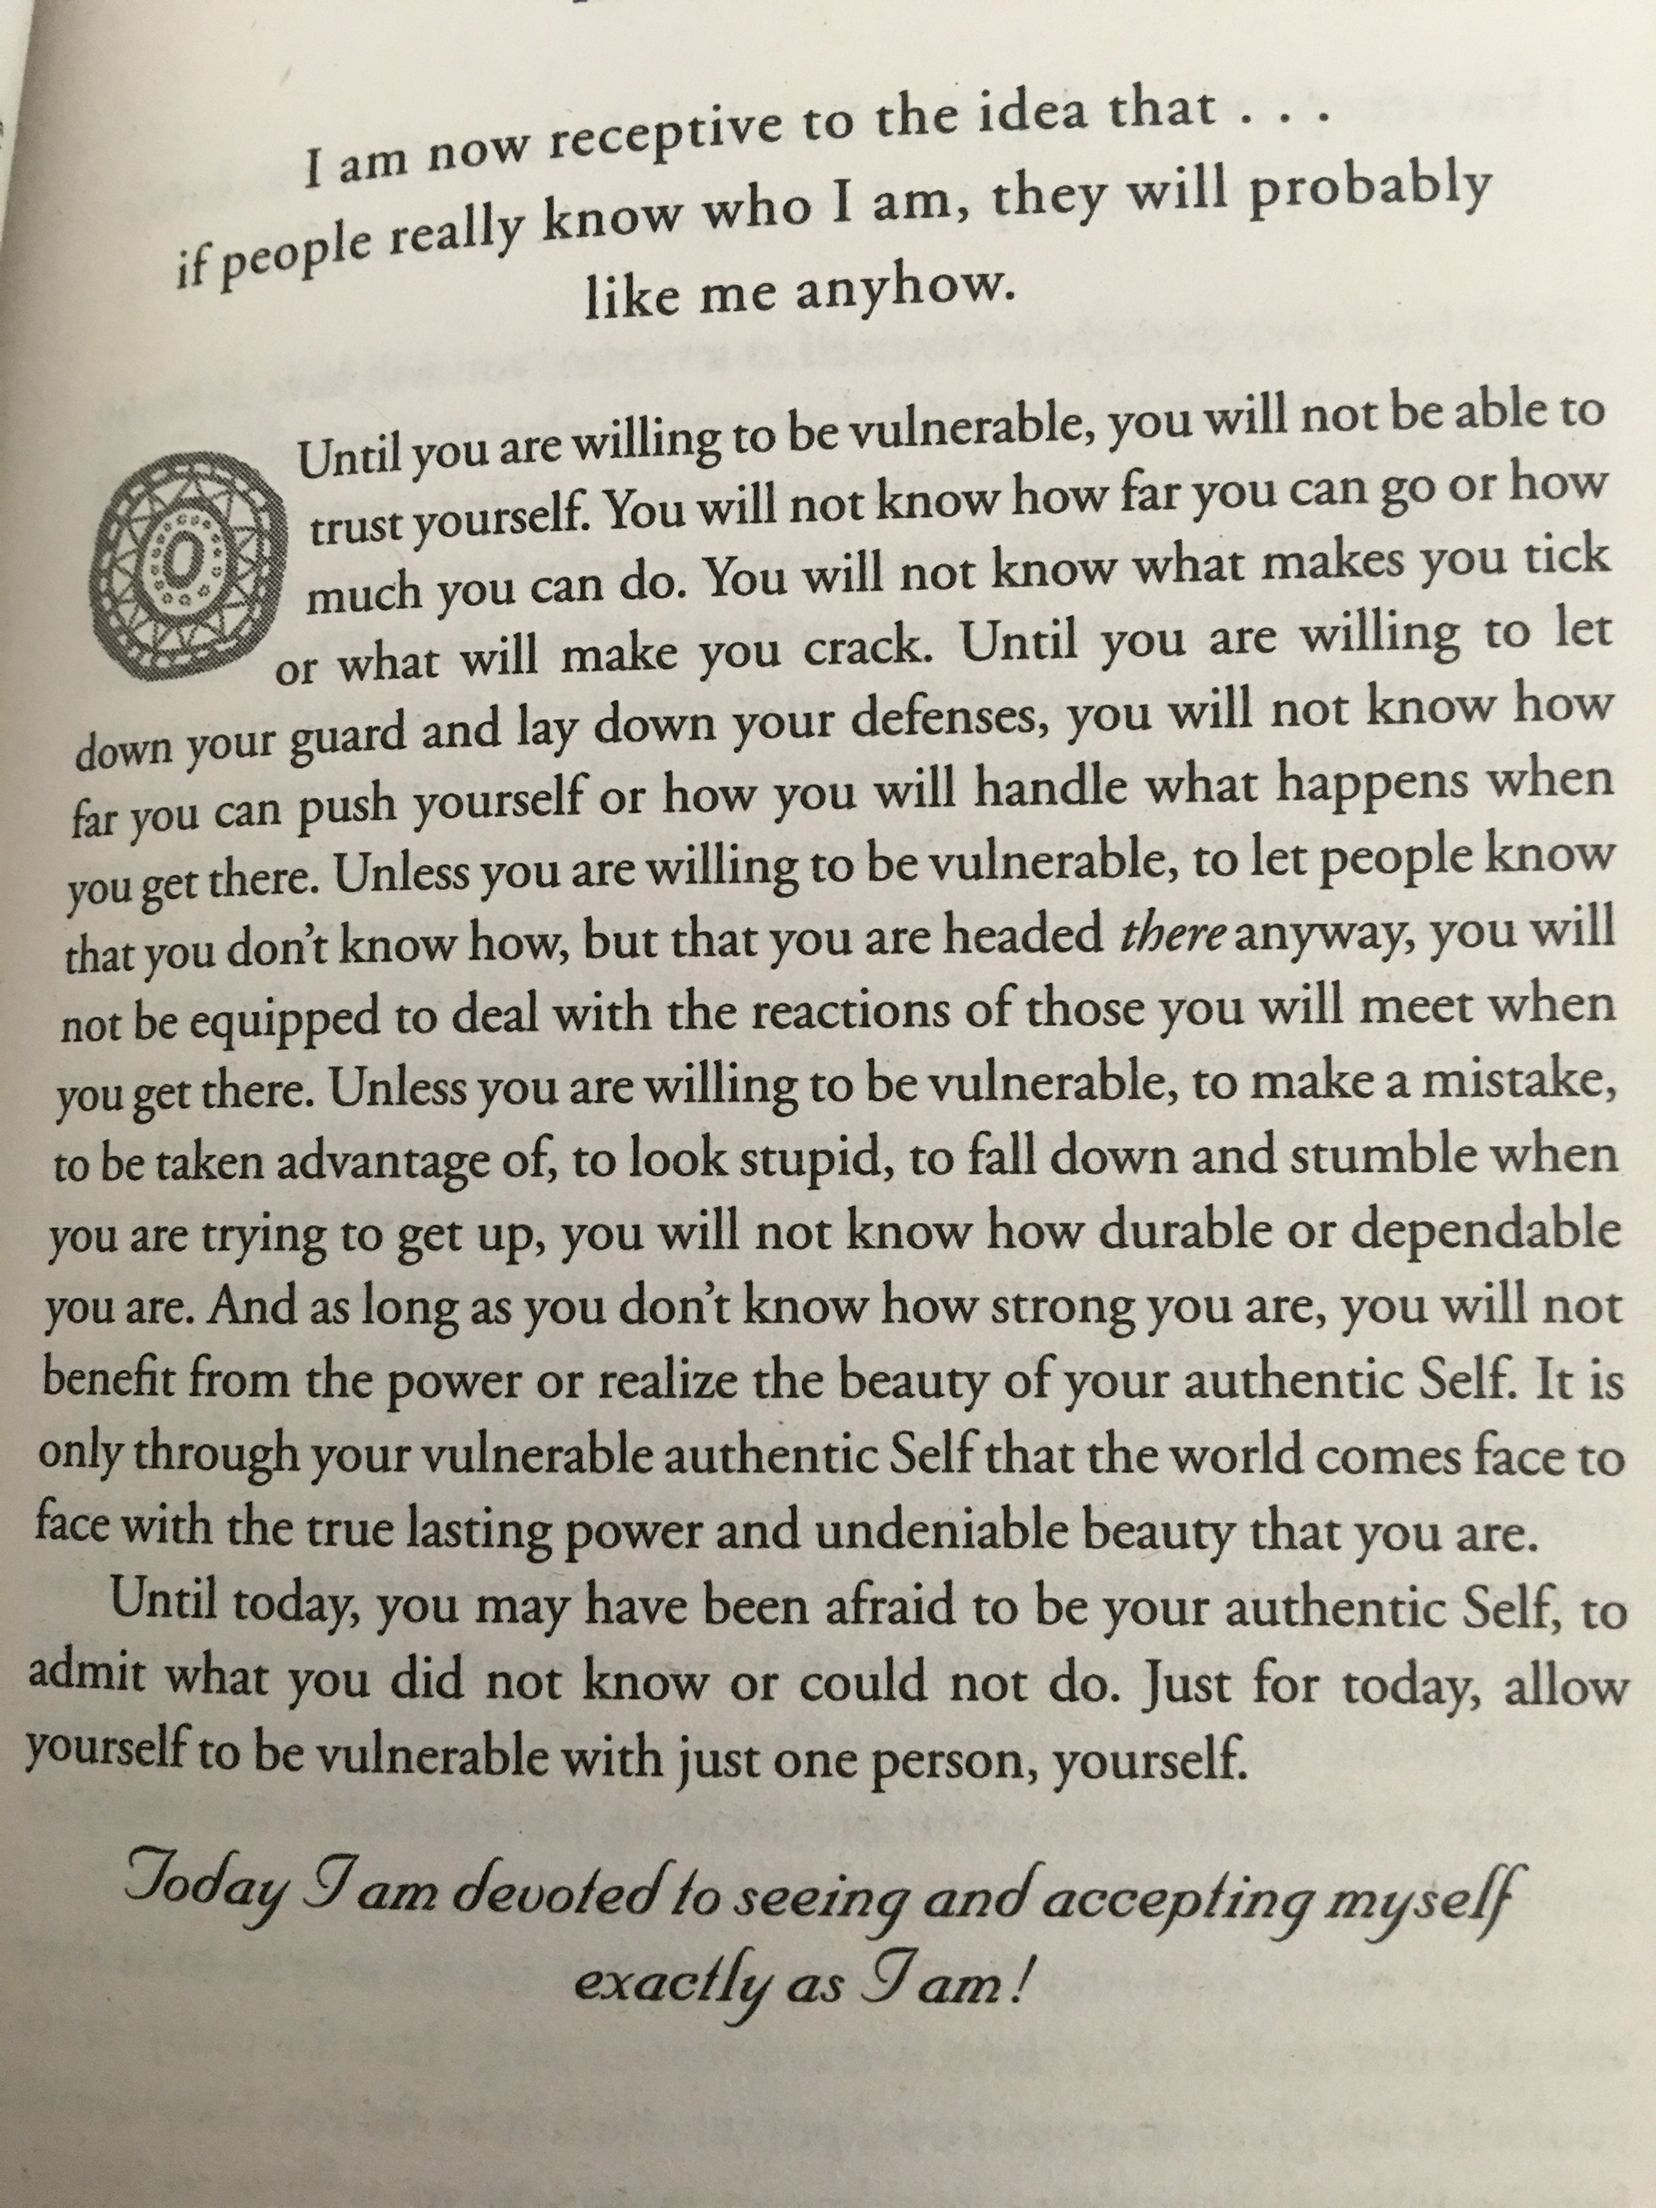 Until today quotes by iyanla vanzant